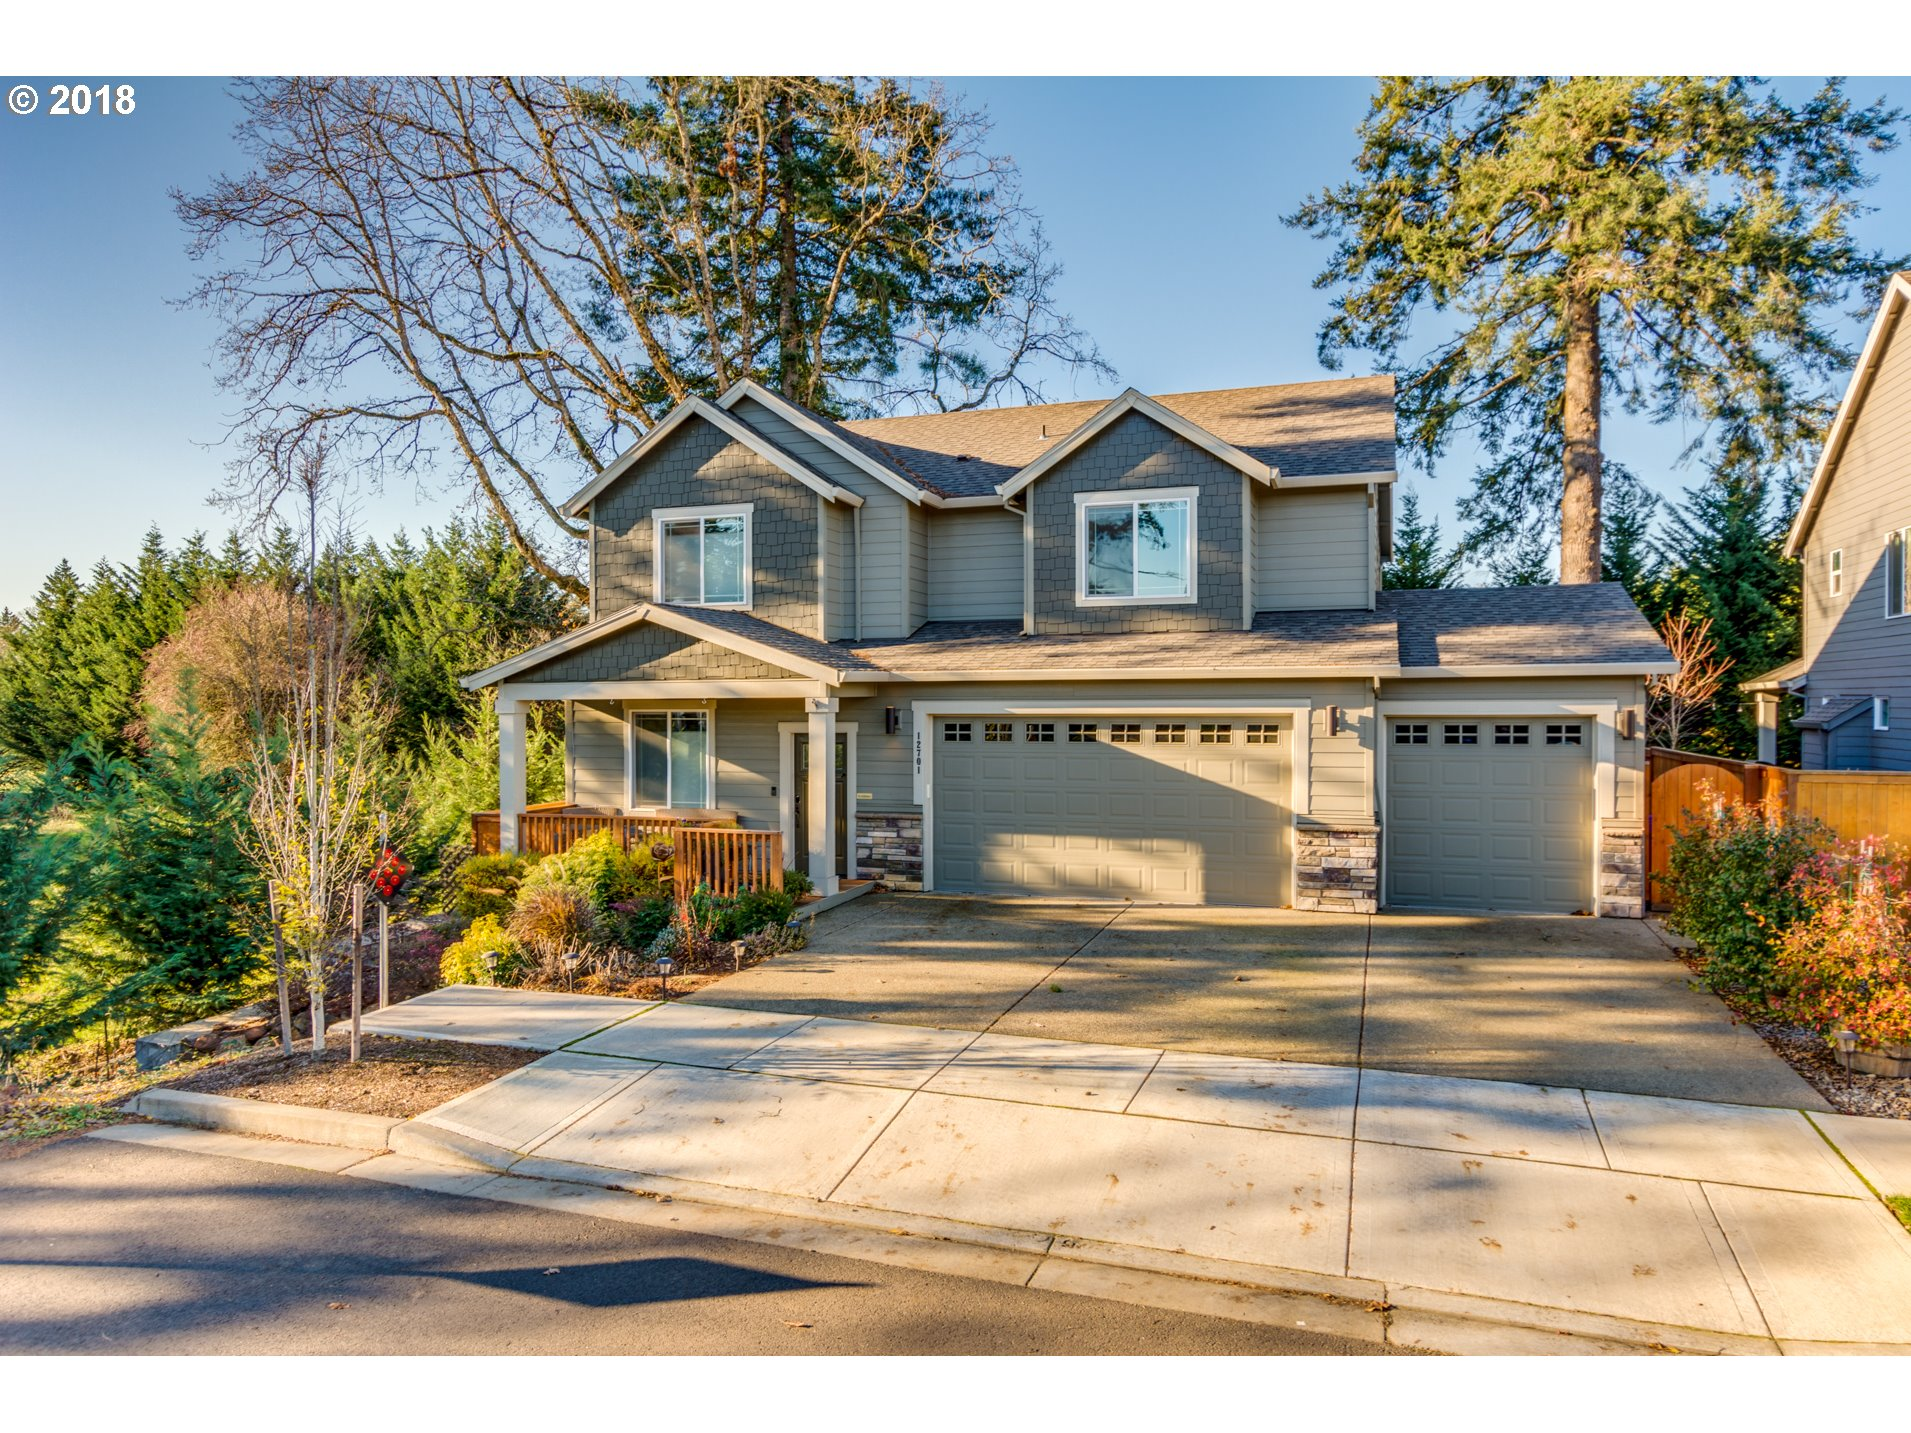 12701 ASPENWOOD LN, Oregon City OR 97045